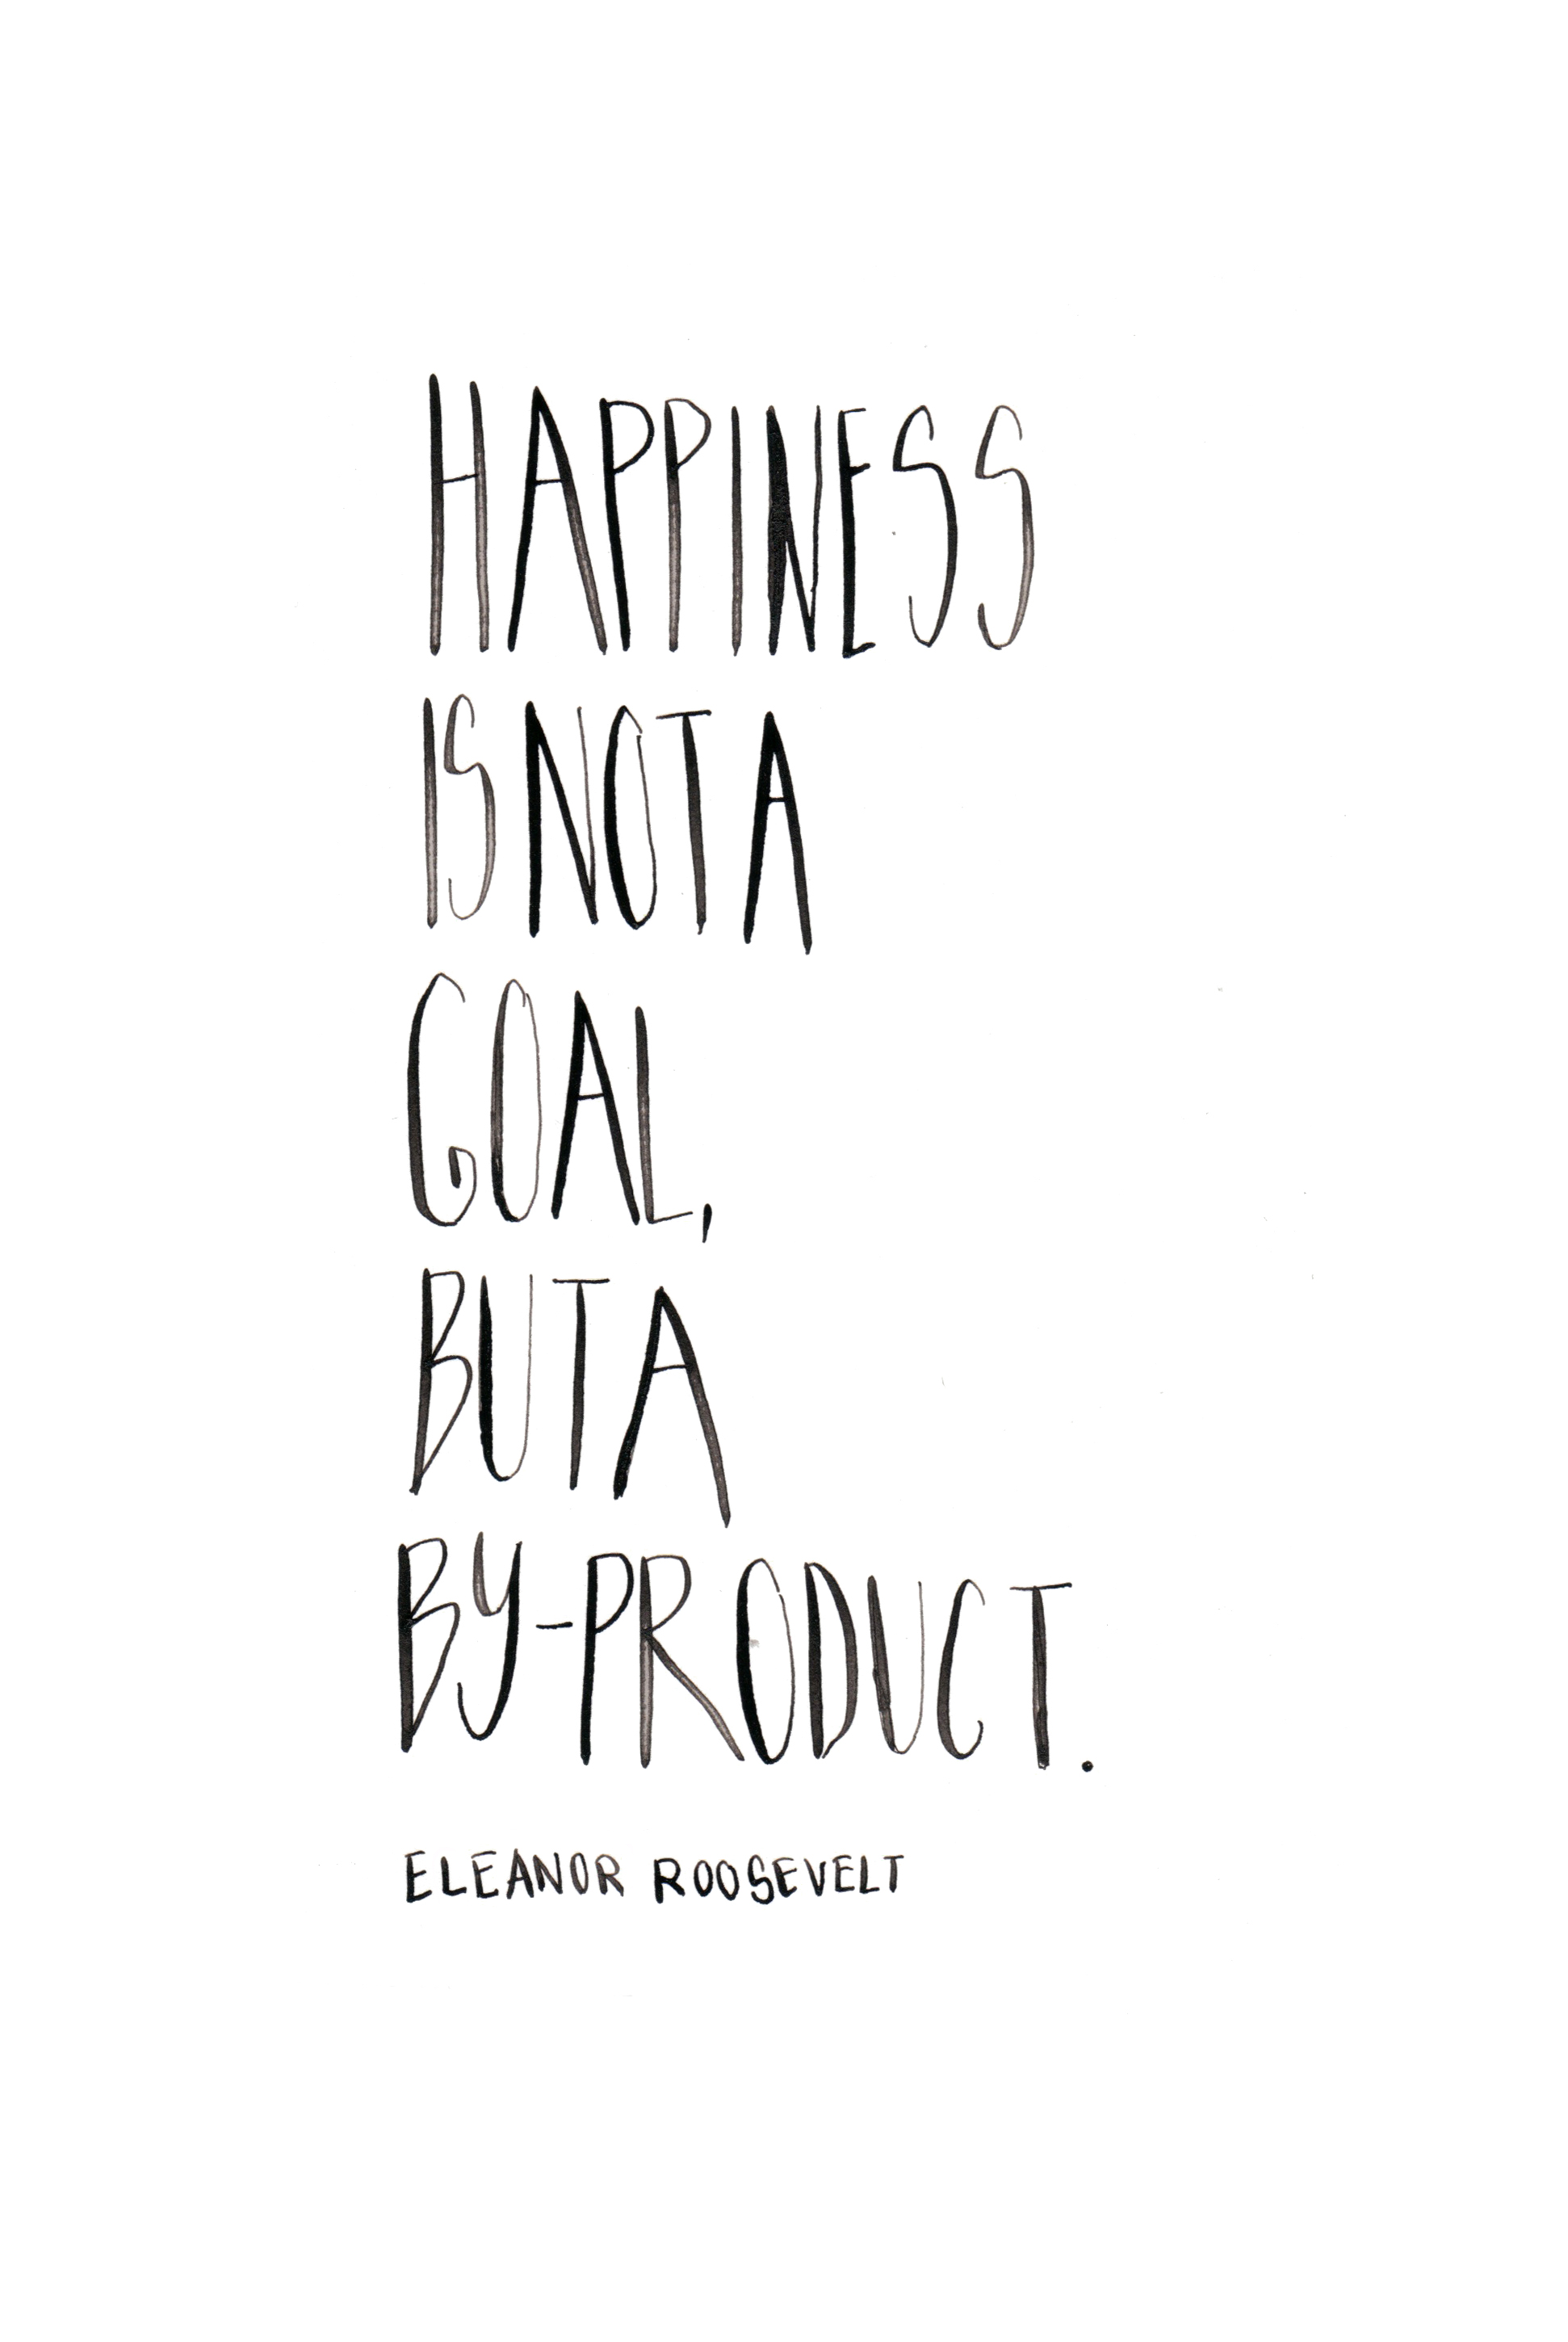 Happiness is not a goal, but a by-product. Eleanor Roosevelt. Custom Type by Alicia Carvalho | www.alicia-carvalho.com